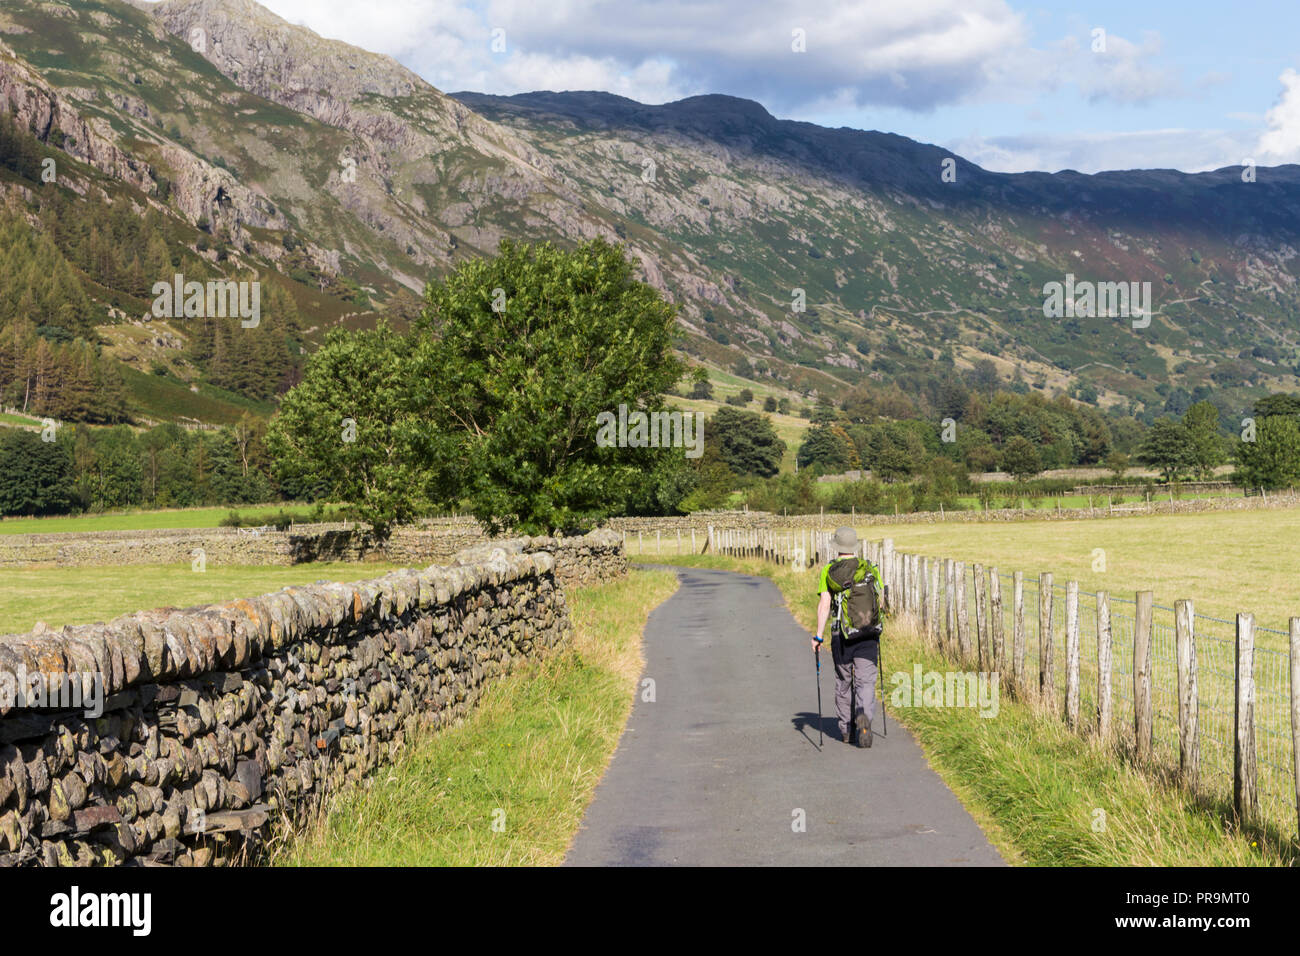 A hillwalker returning to Great Langdale valley at the foot of Langdale Pikes in the Lake District, Cumbria, England. - Stock Image